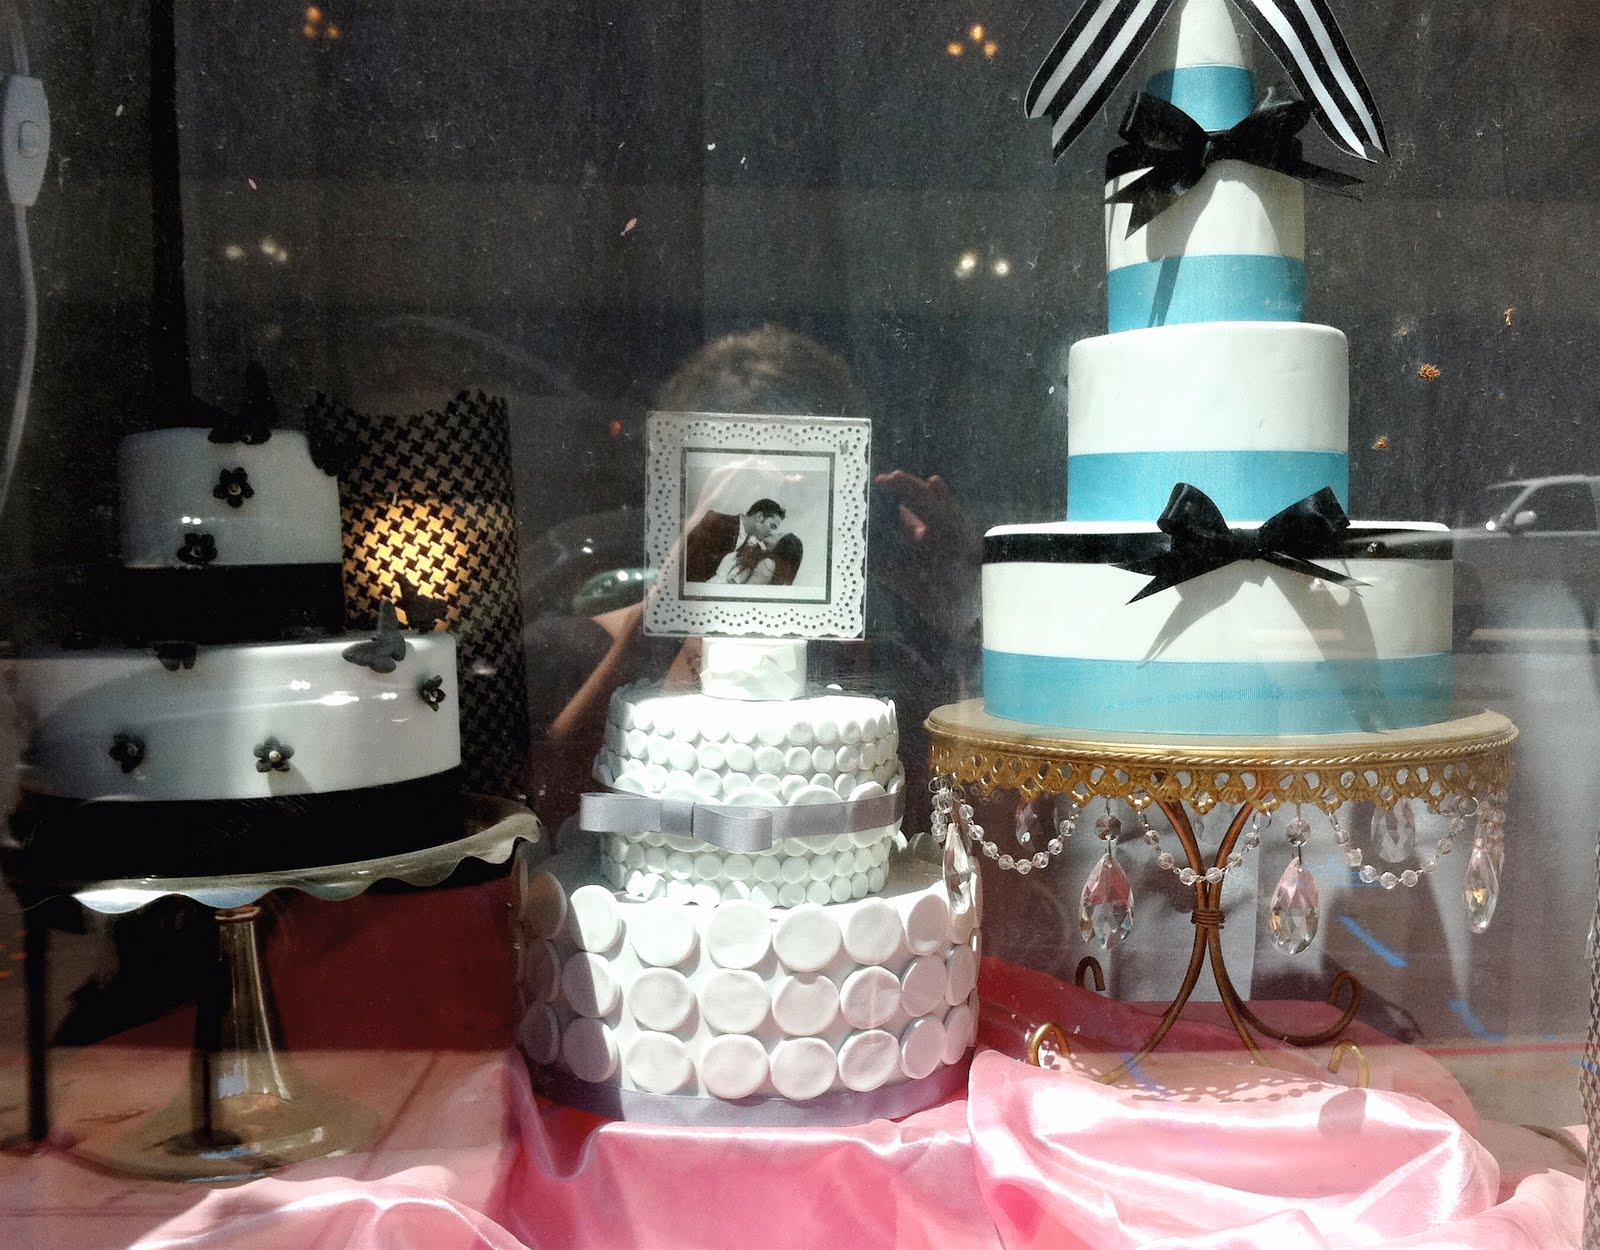 With A Great Location, Located Practically On 16th Street Mall In Downtown  Denver, Mermaids Bakery Satisfies The City With Cupcakes, Cakes  (glutenfree